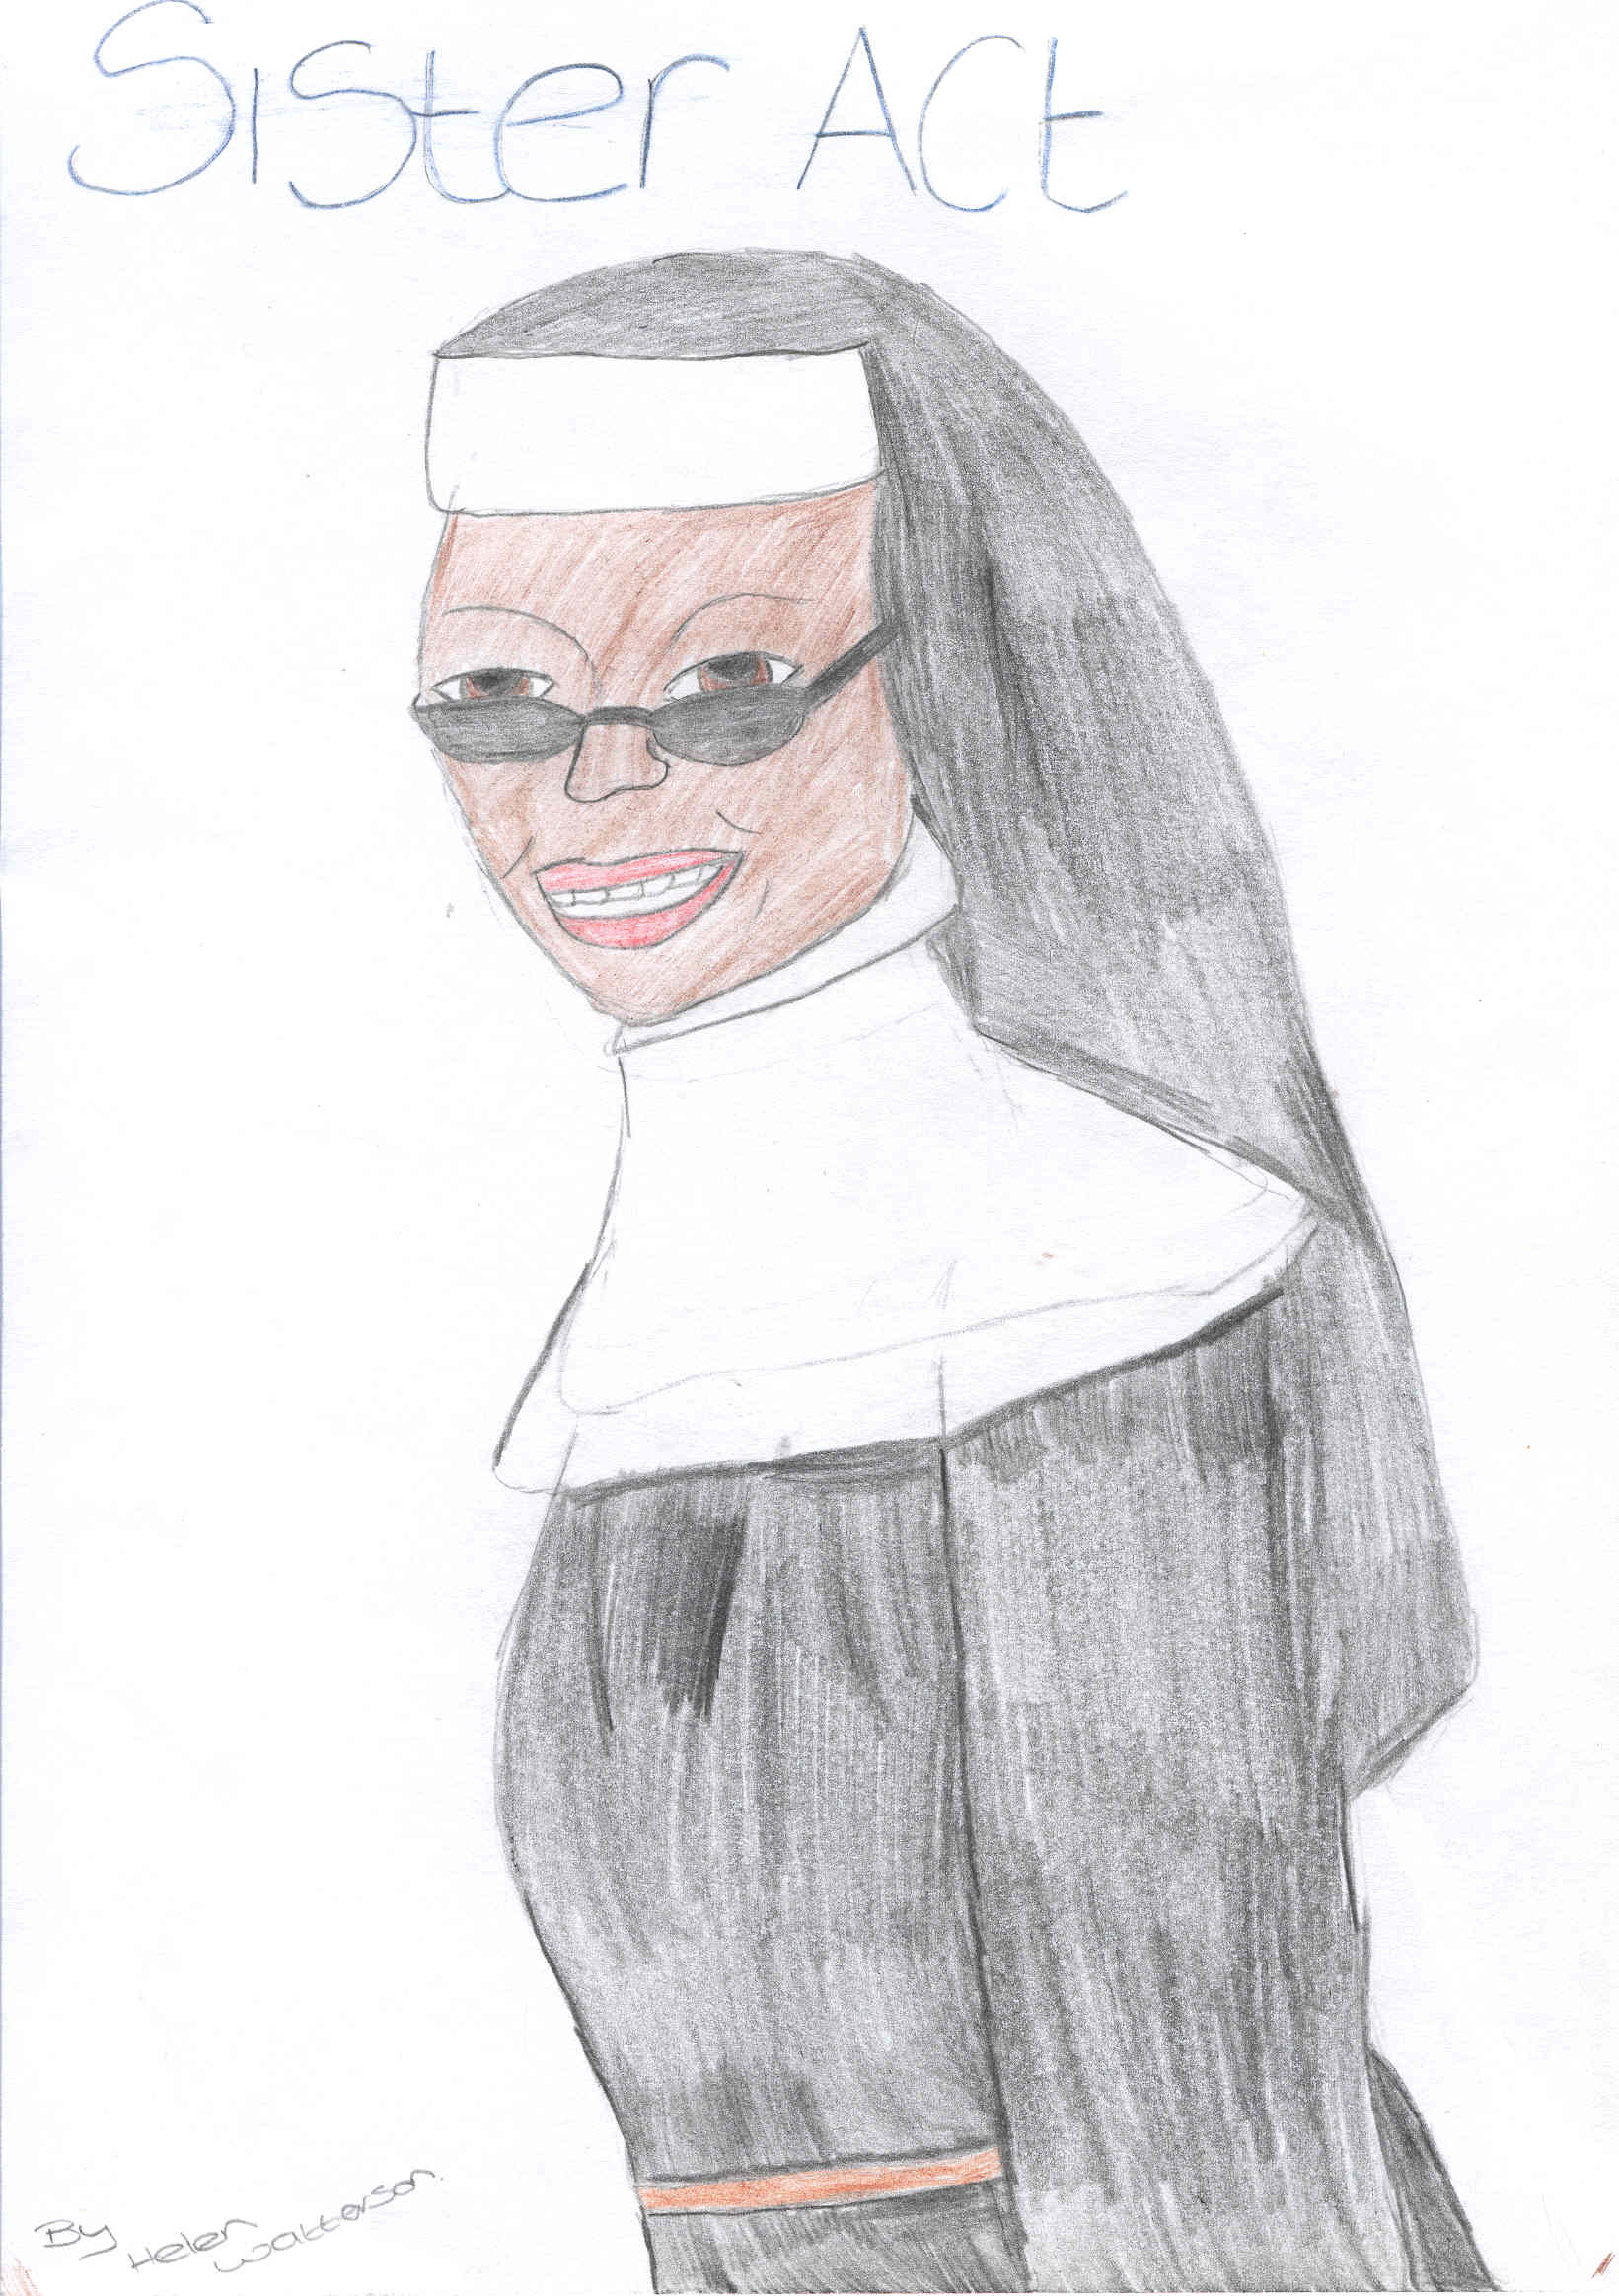 Deloris (SISTER ACT)